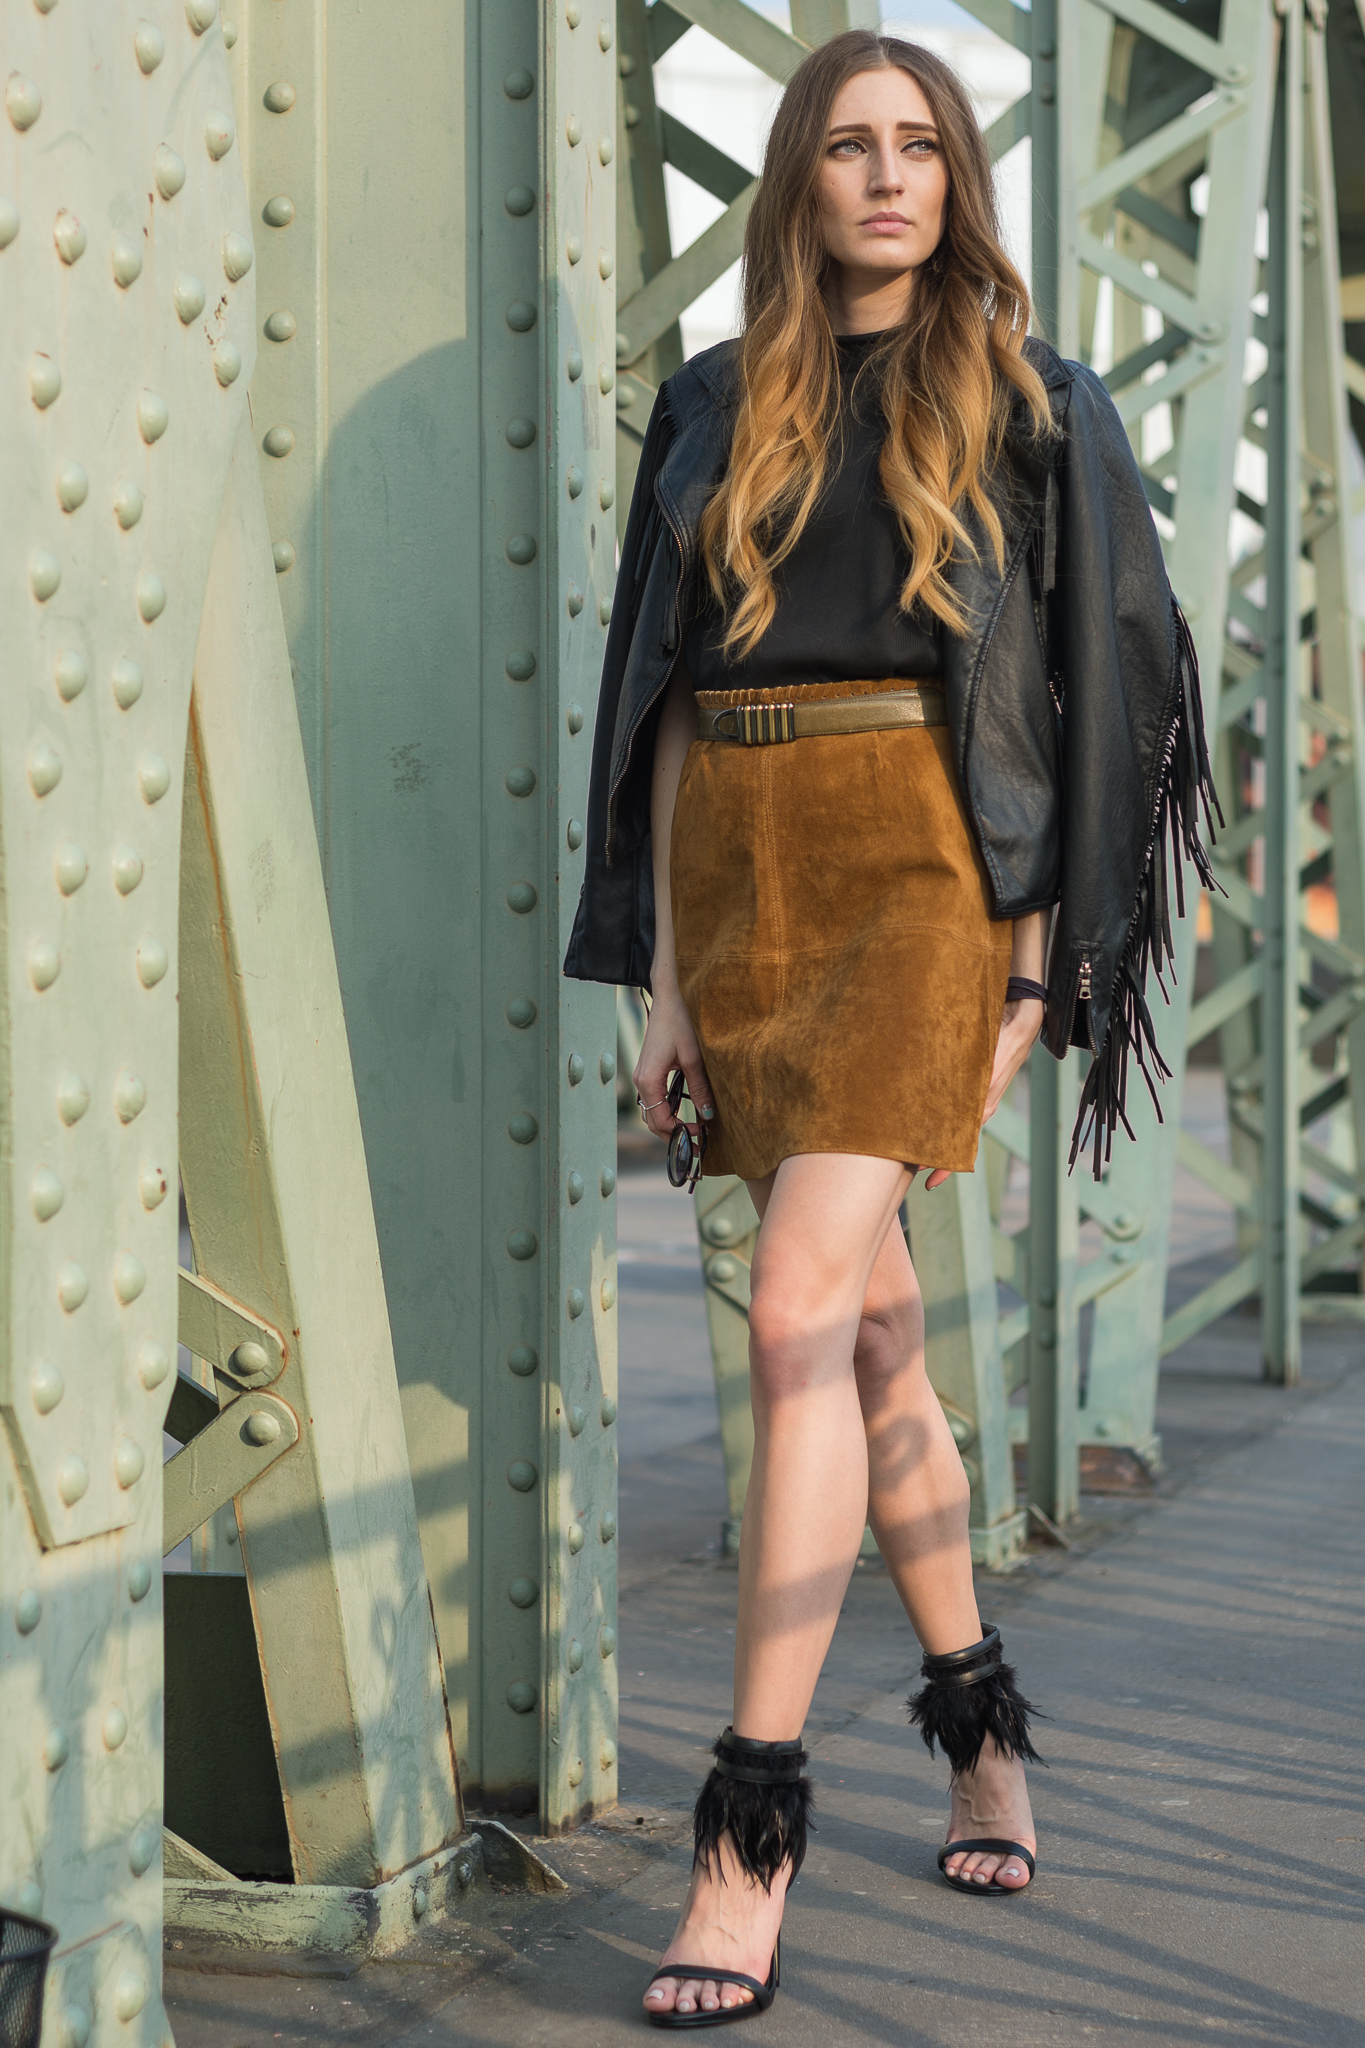 Suede skirt and fringe leather jacket | Lisa Fiege